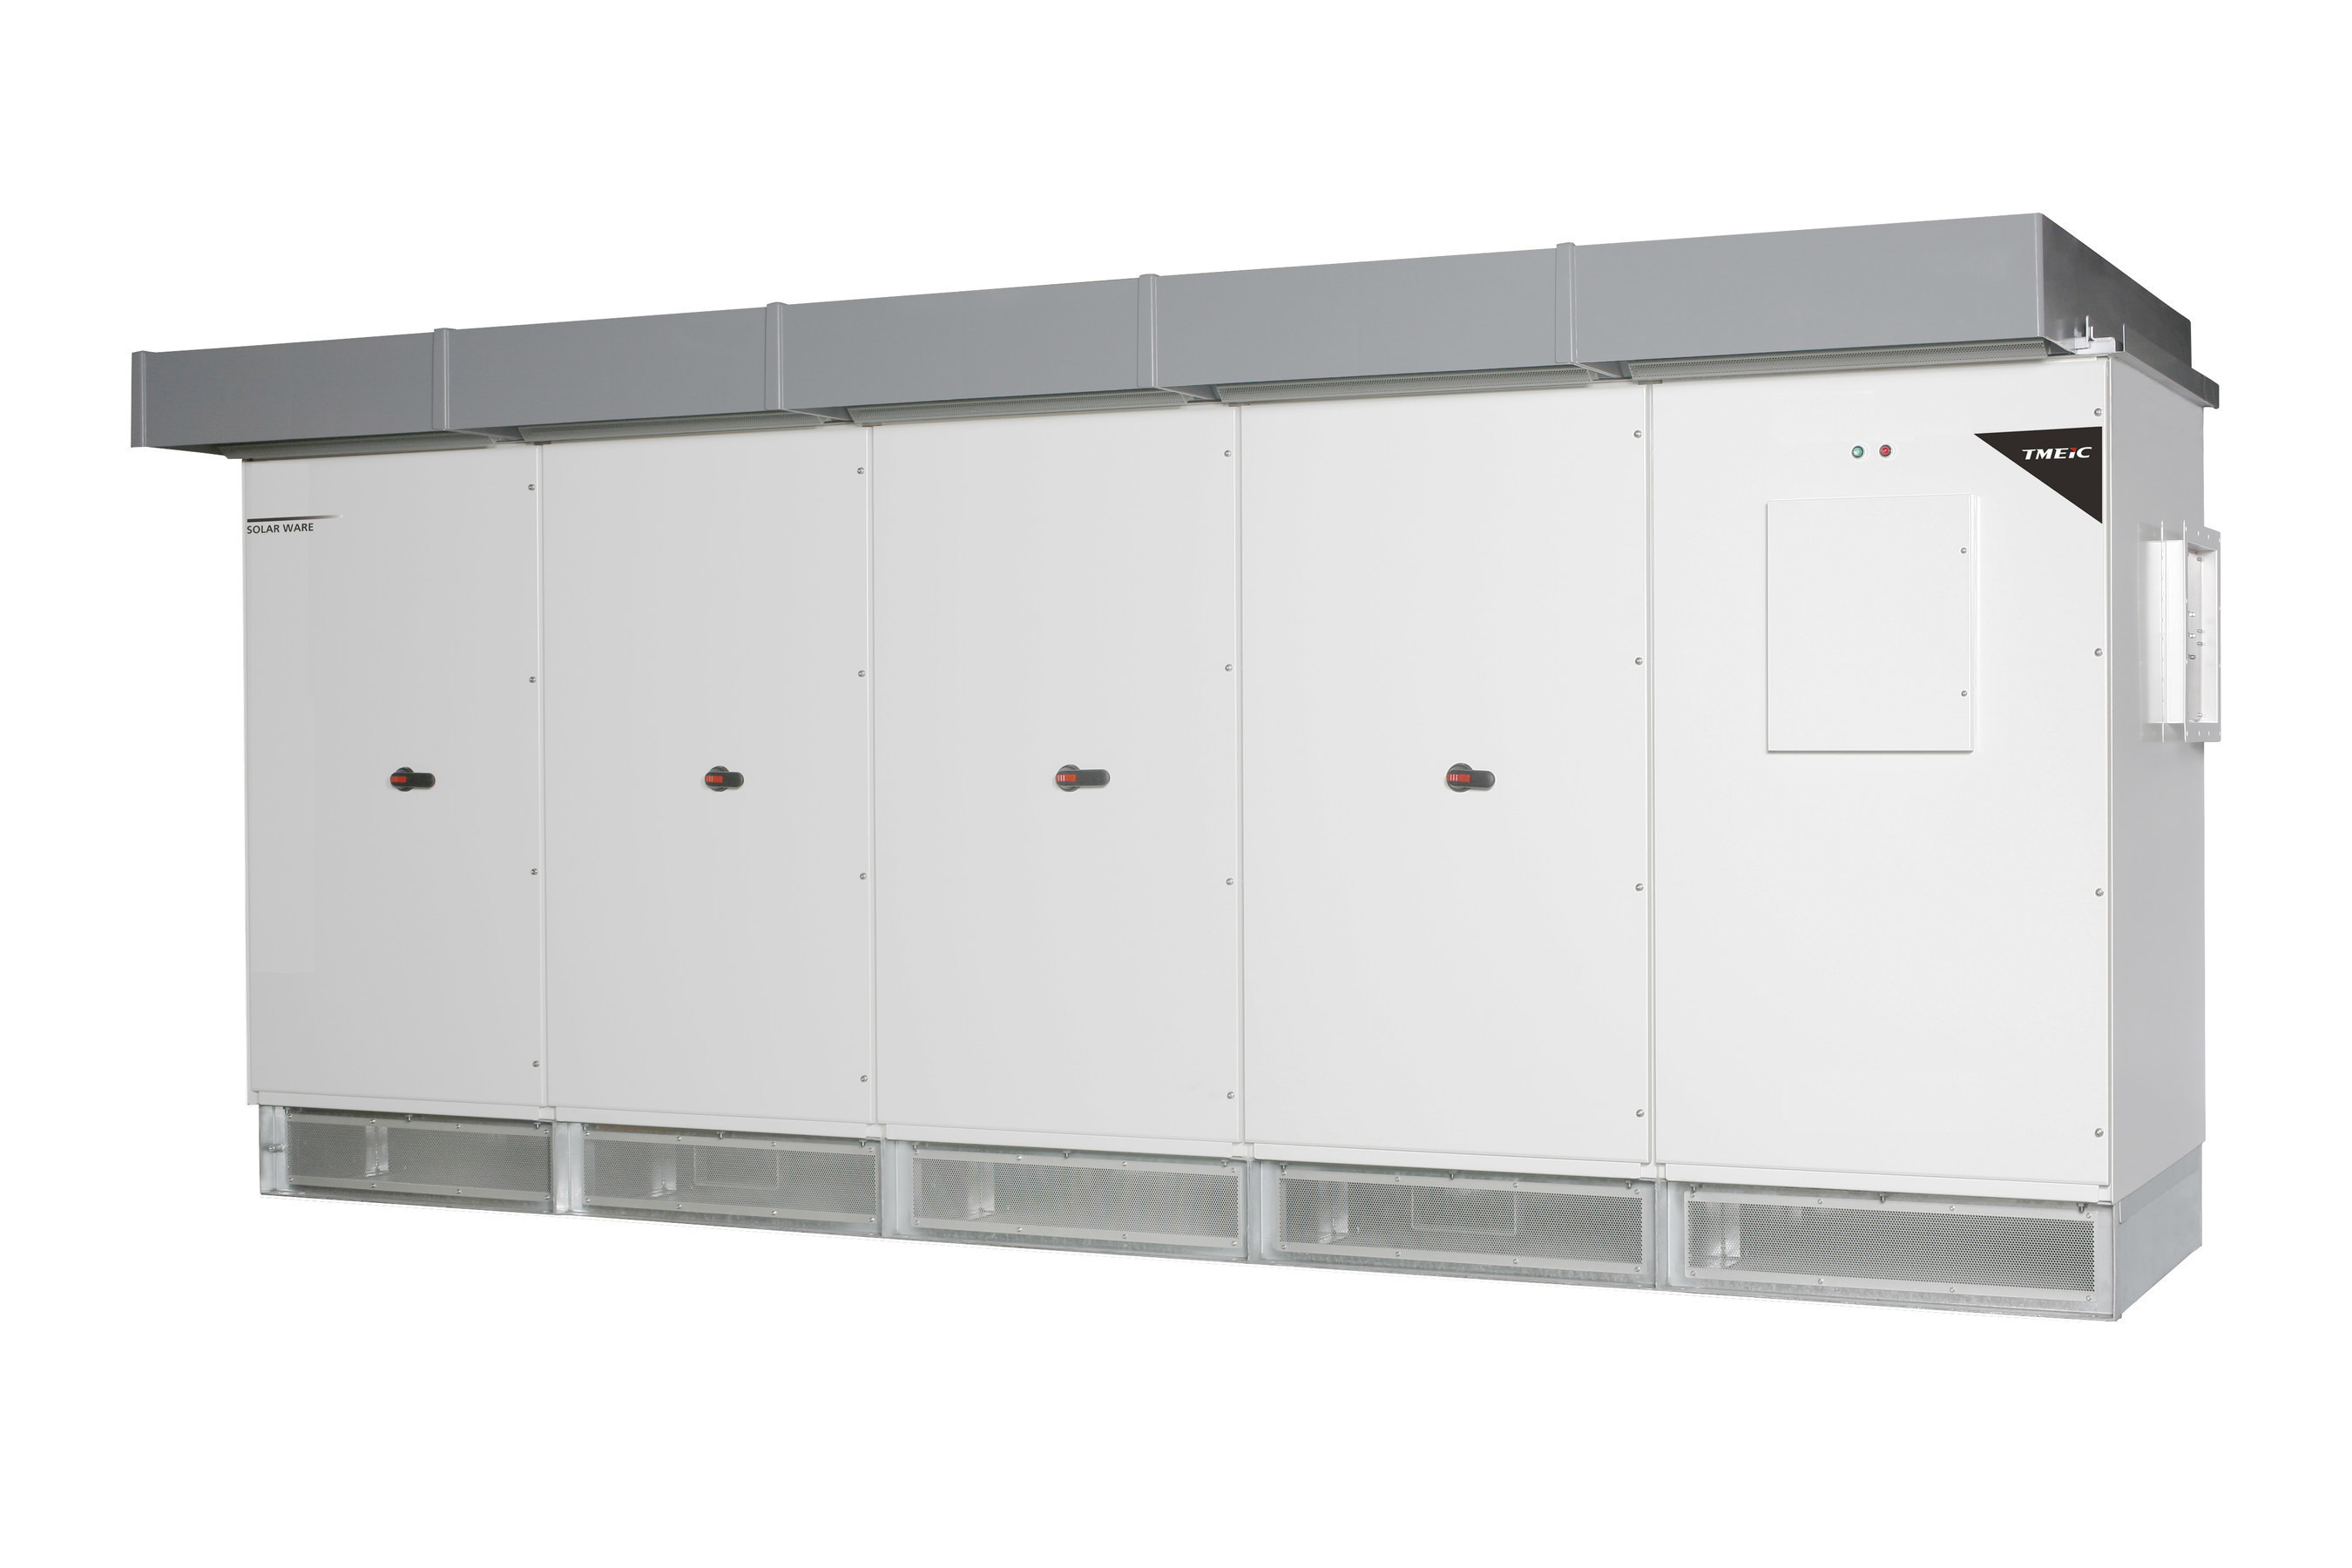 TMEIC's new 1500V inverter is the latest addition to its portfolio of PV utility scale solar inverters for industrial markets. Built on decades of engineering experience in power electronics, Solar Ware(R) inverters offer the industry's most advanced grid management in an efficient, compact footprint. The new 1500V Solar Ware(R) inverter builds upon the Samurai Series patented multilevel inverter technology, offering maximized and optimized efficiency, with a wide MPPT range.